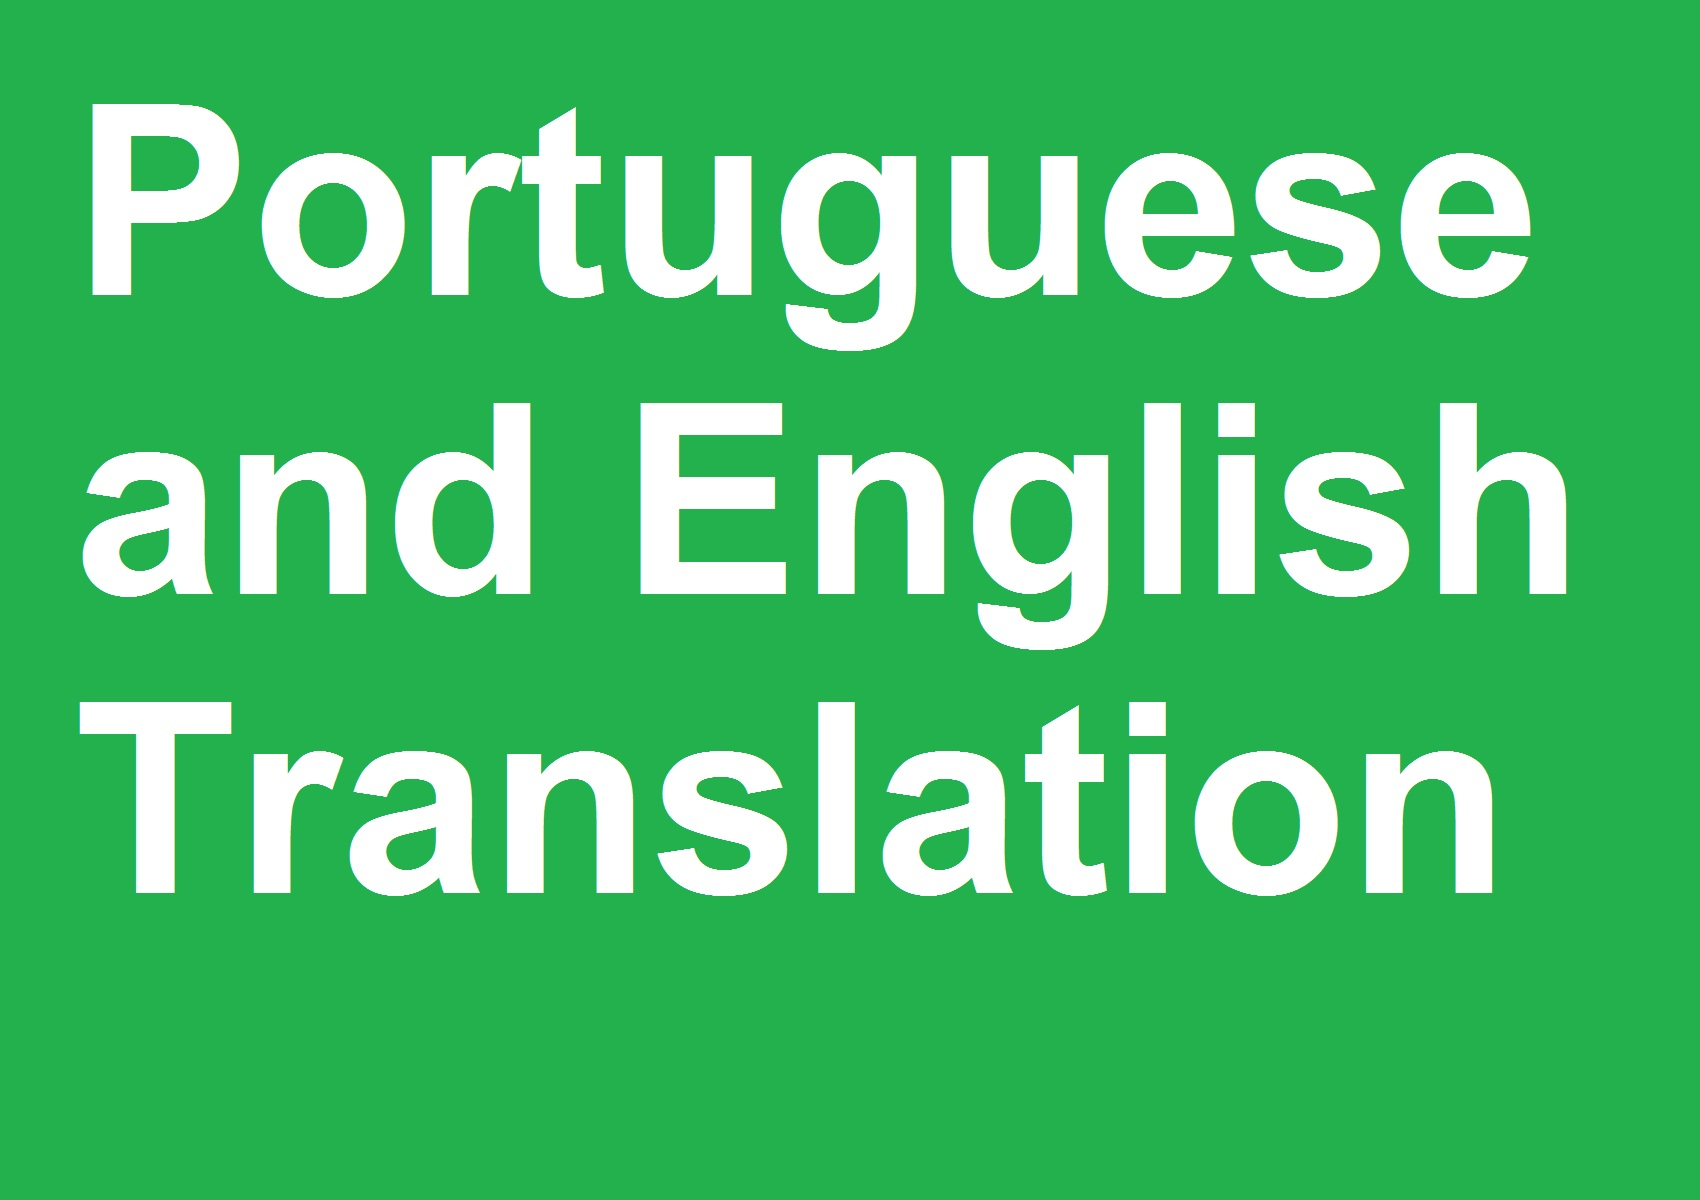 I will translate up to 800 words from Portuguese into English and vice-versa